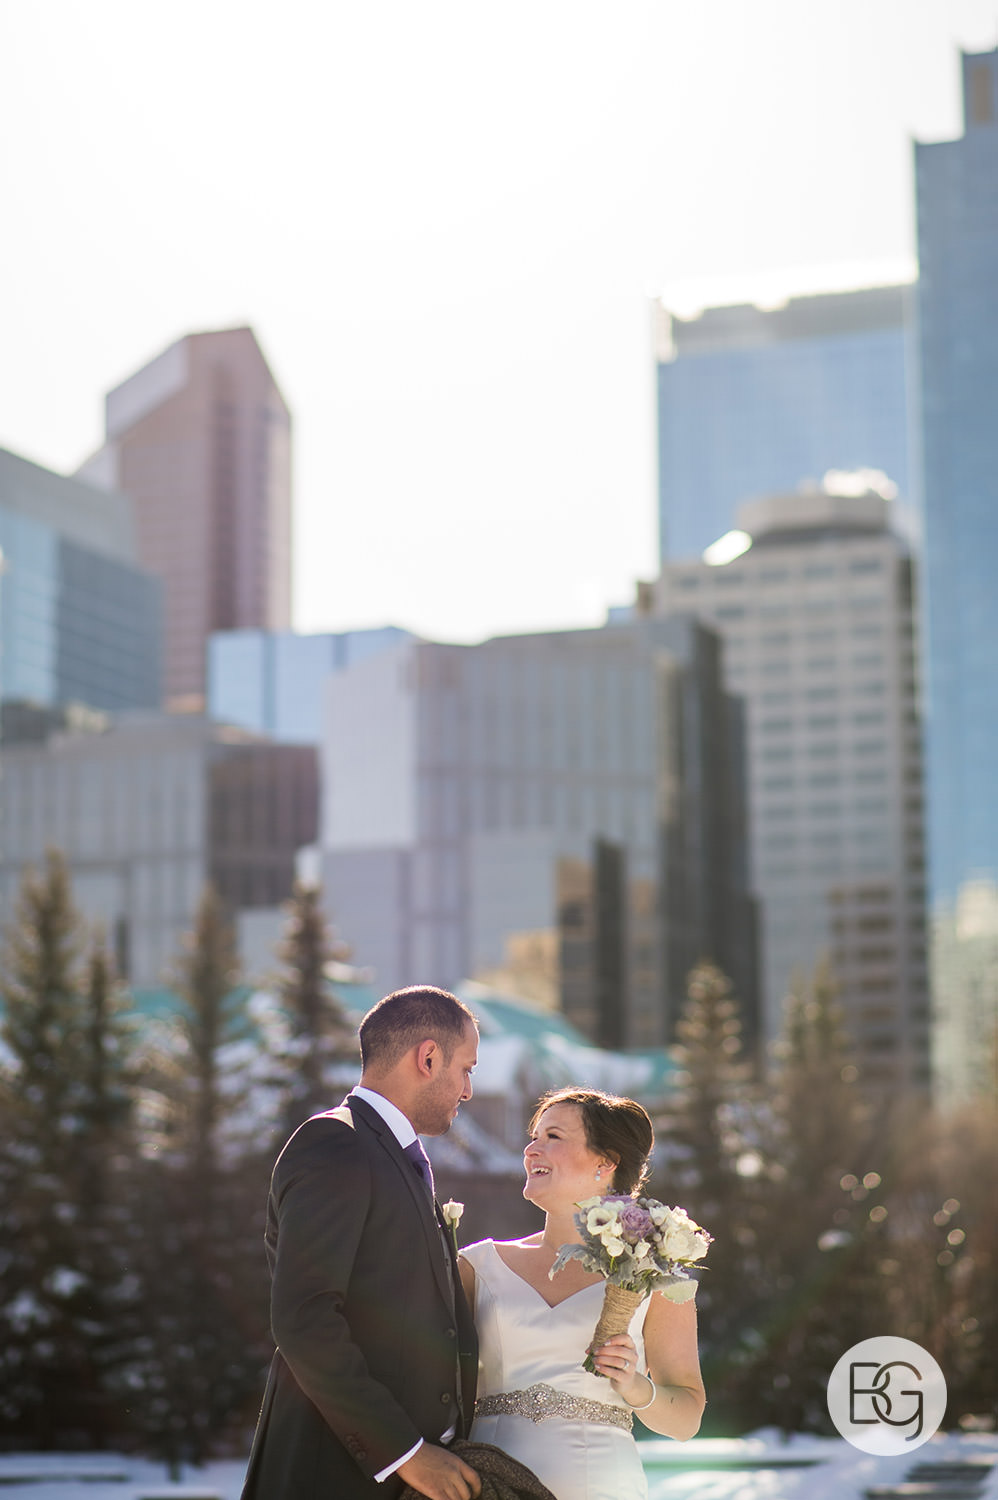 winter wedding in calgary at river cafe in princes island park city skyline